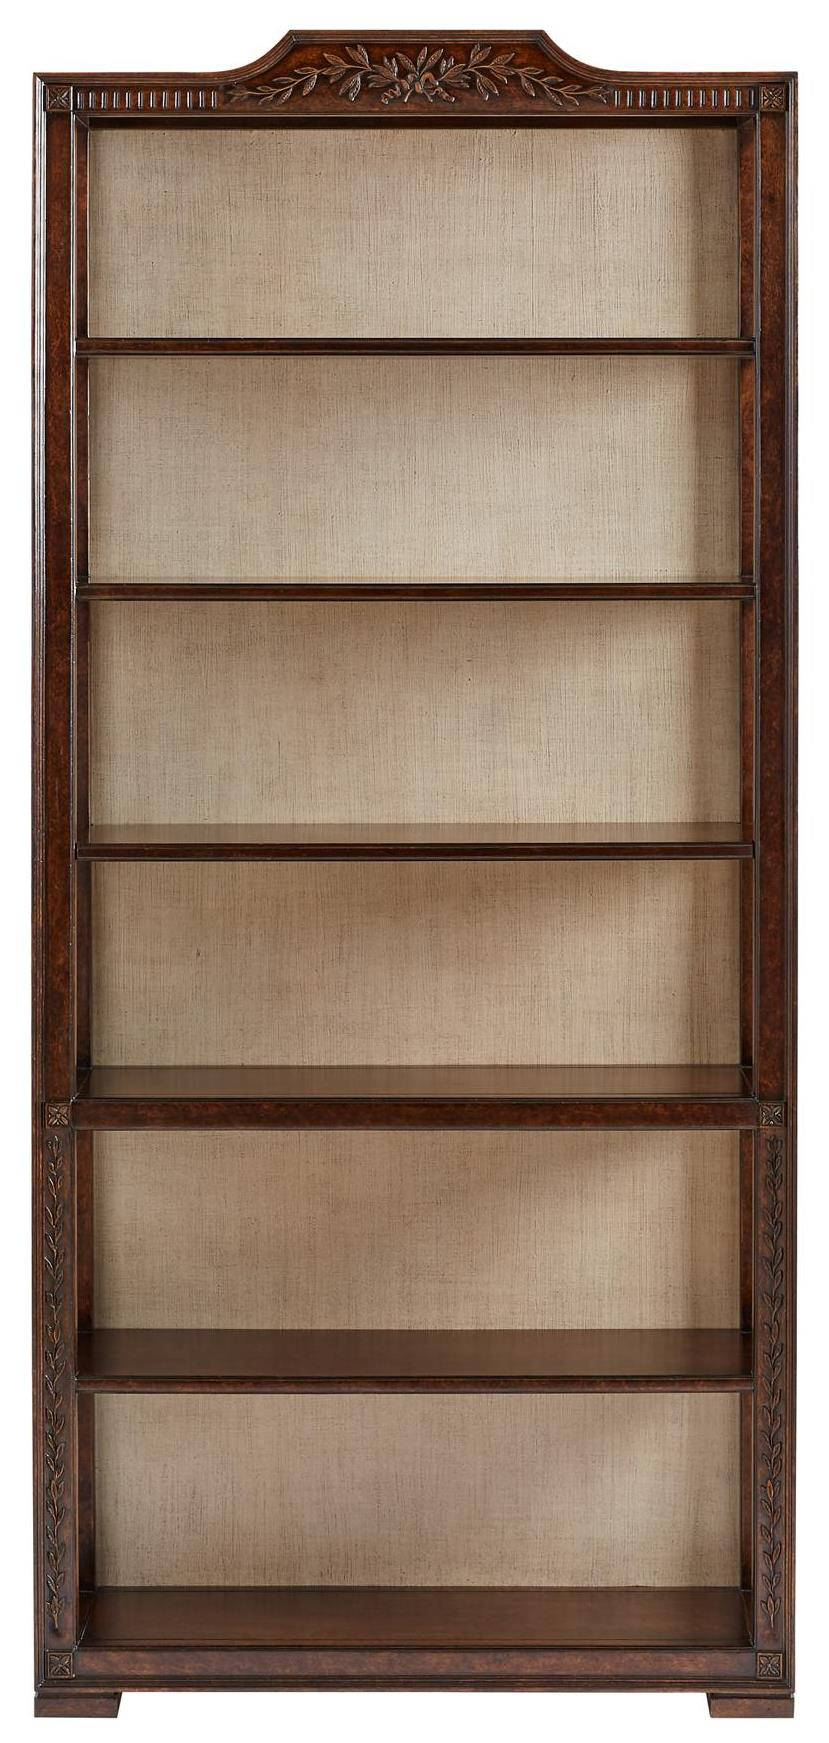 Stanley Furniture Villa Couture Viviana Bookcase - Item Number: 510-15-19